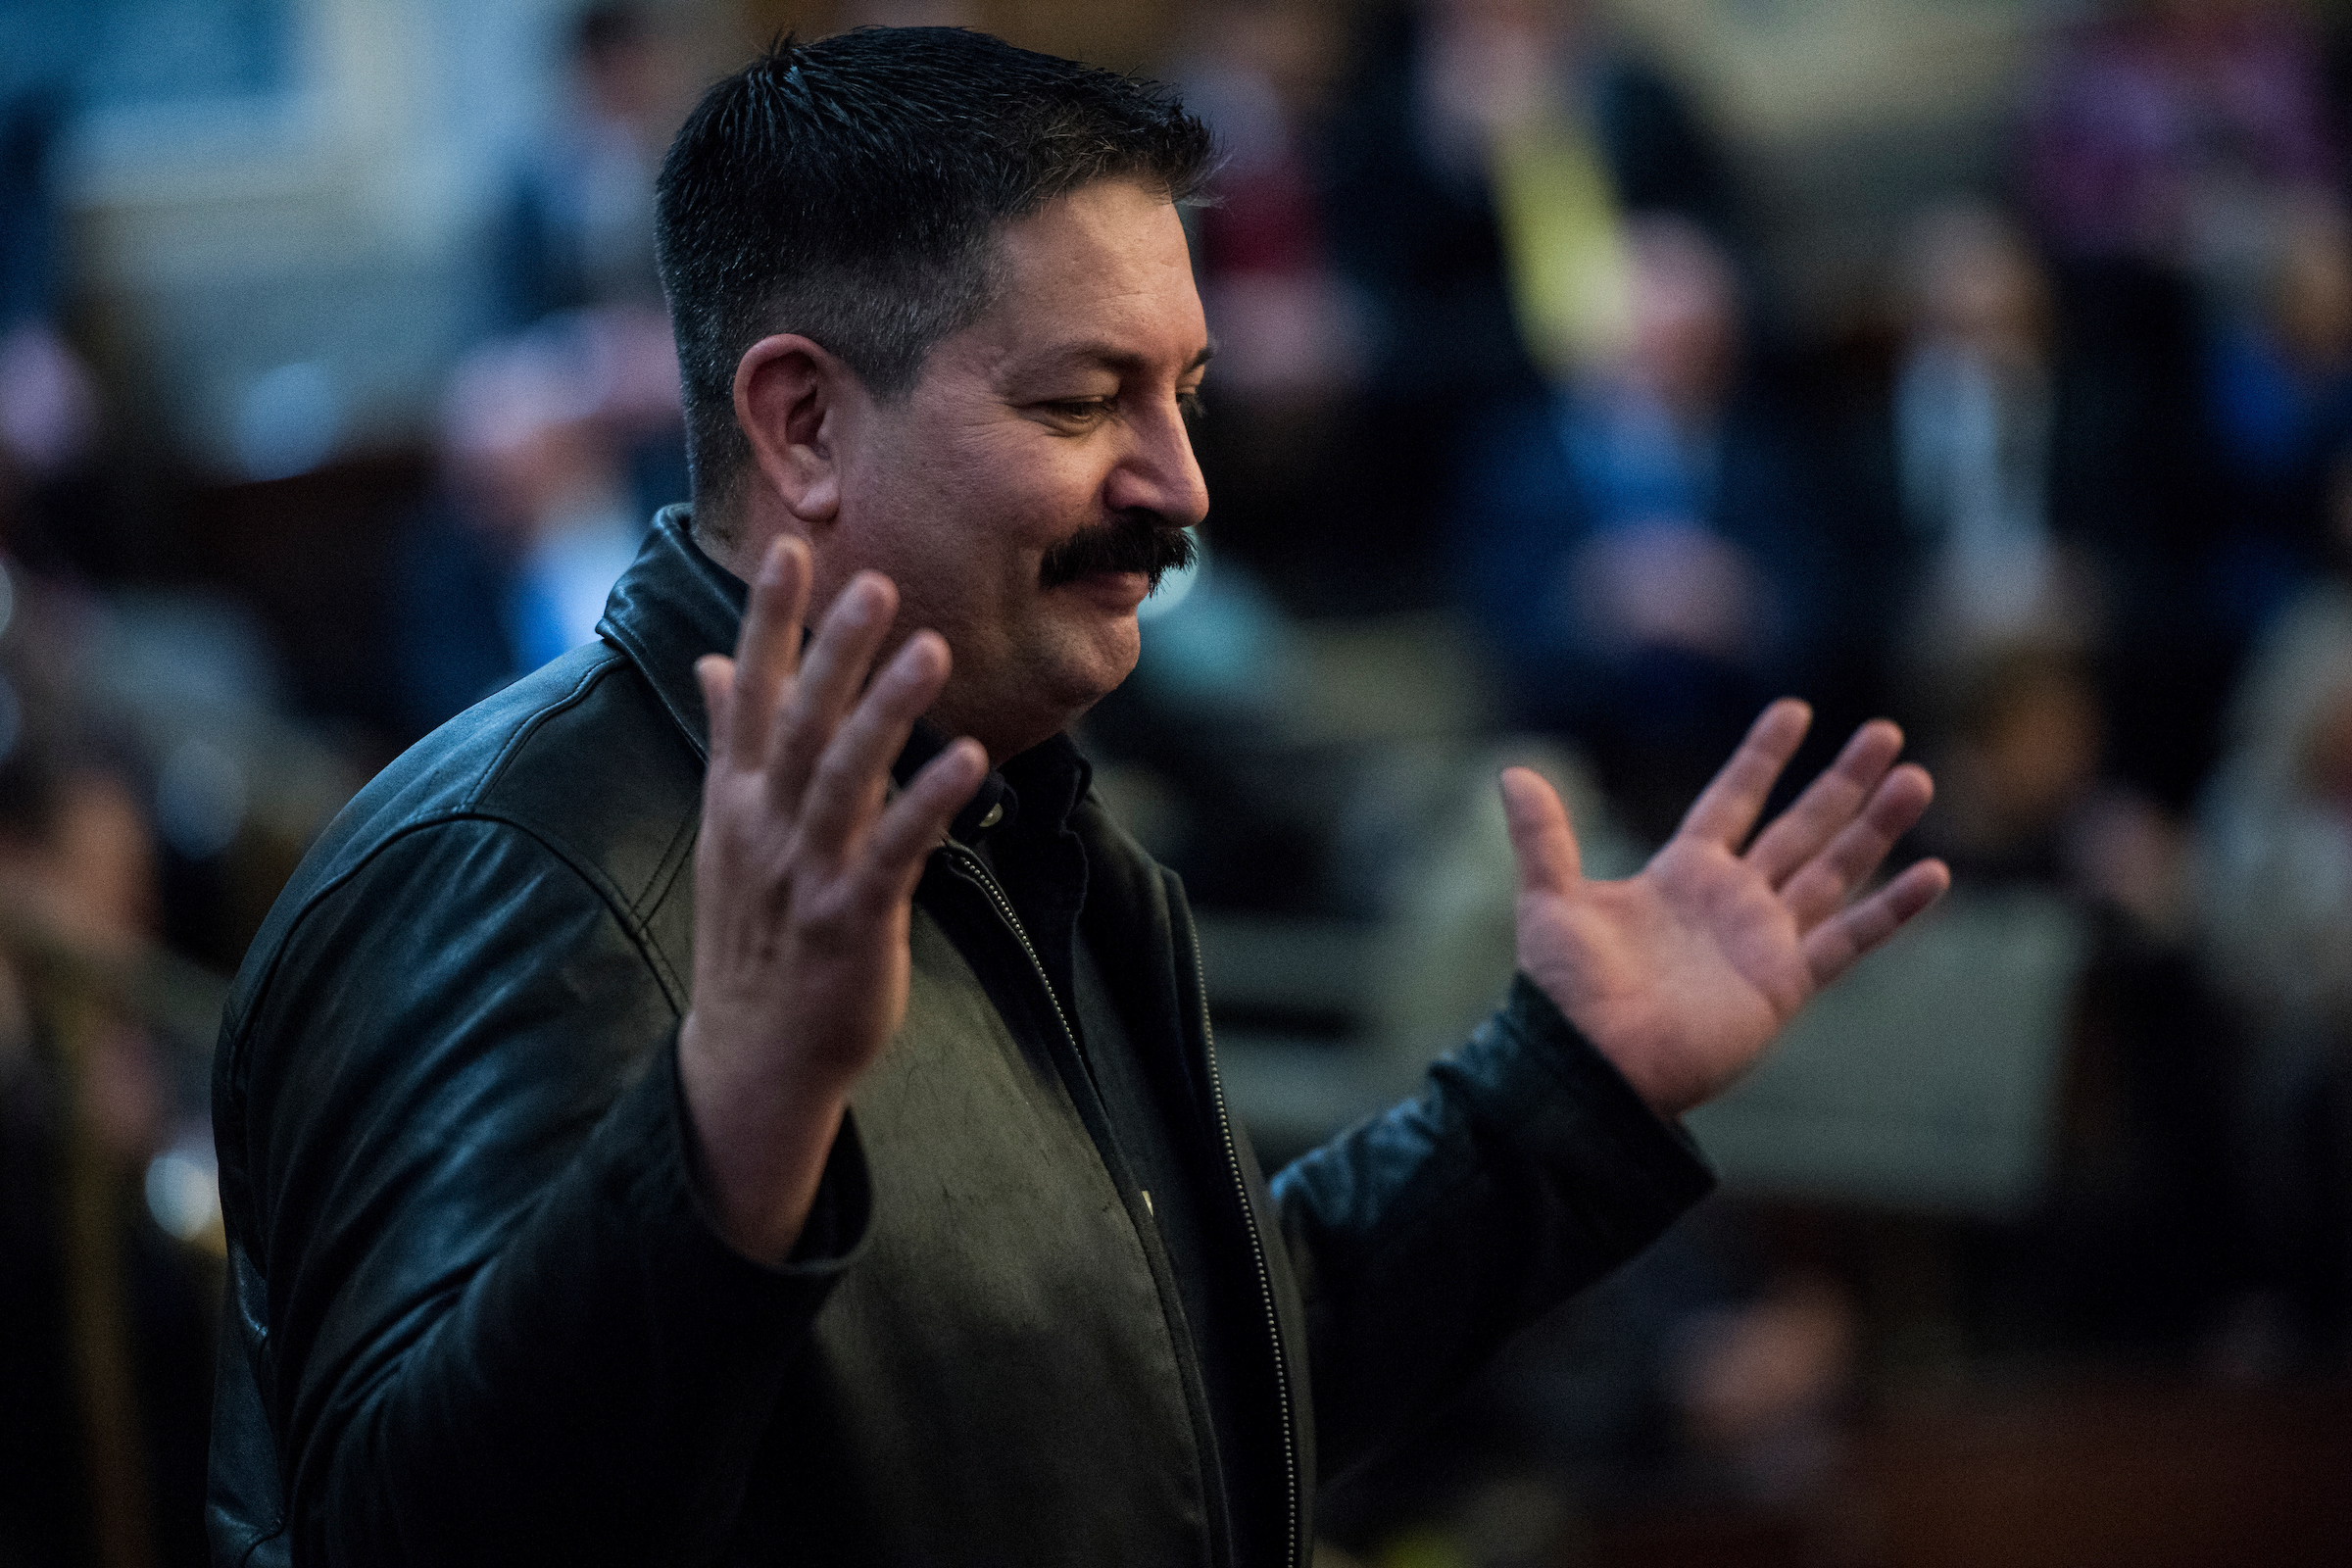 UNITED STATES - JANUARY 30: Randy Bryce, Democratic challenger to Speaker of the House Paul Ryan in Wisconsin's 1st Congressional District, gestures to fellow Democrats from the visitors gallery before the start of President Donald Trumps' State of the Union Address to the joint session of Congress in the Capitol on Tuesday, Jan. 30, 2018. (Photo By Bill Clark/CQ Roll Call)